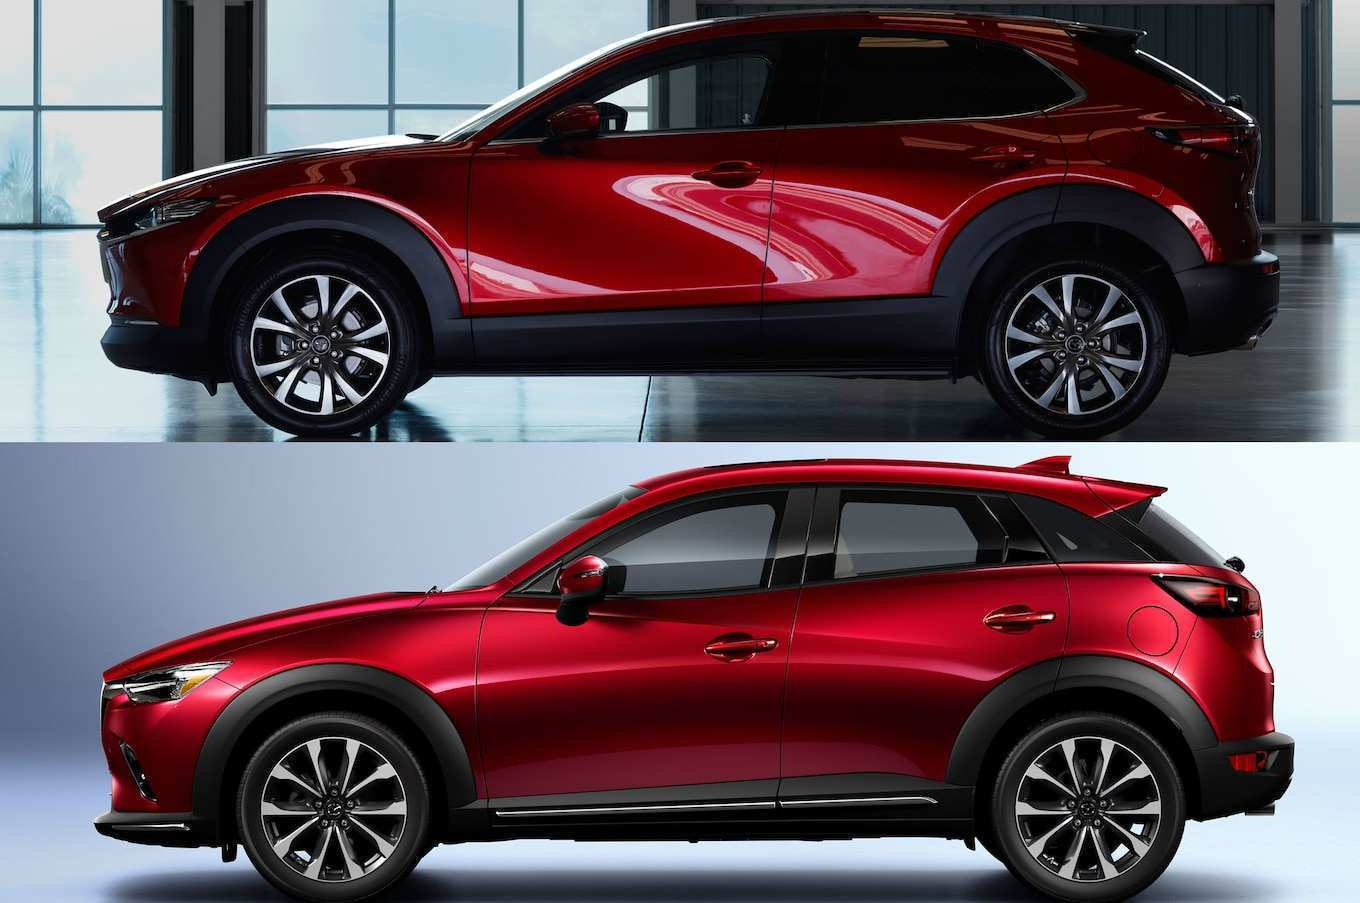 41 New 2020 Mazda Cx 3 Images